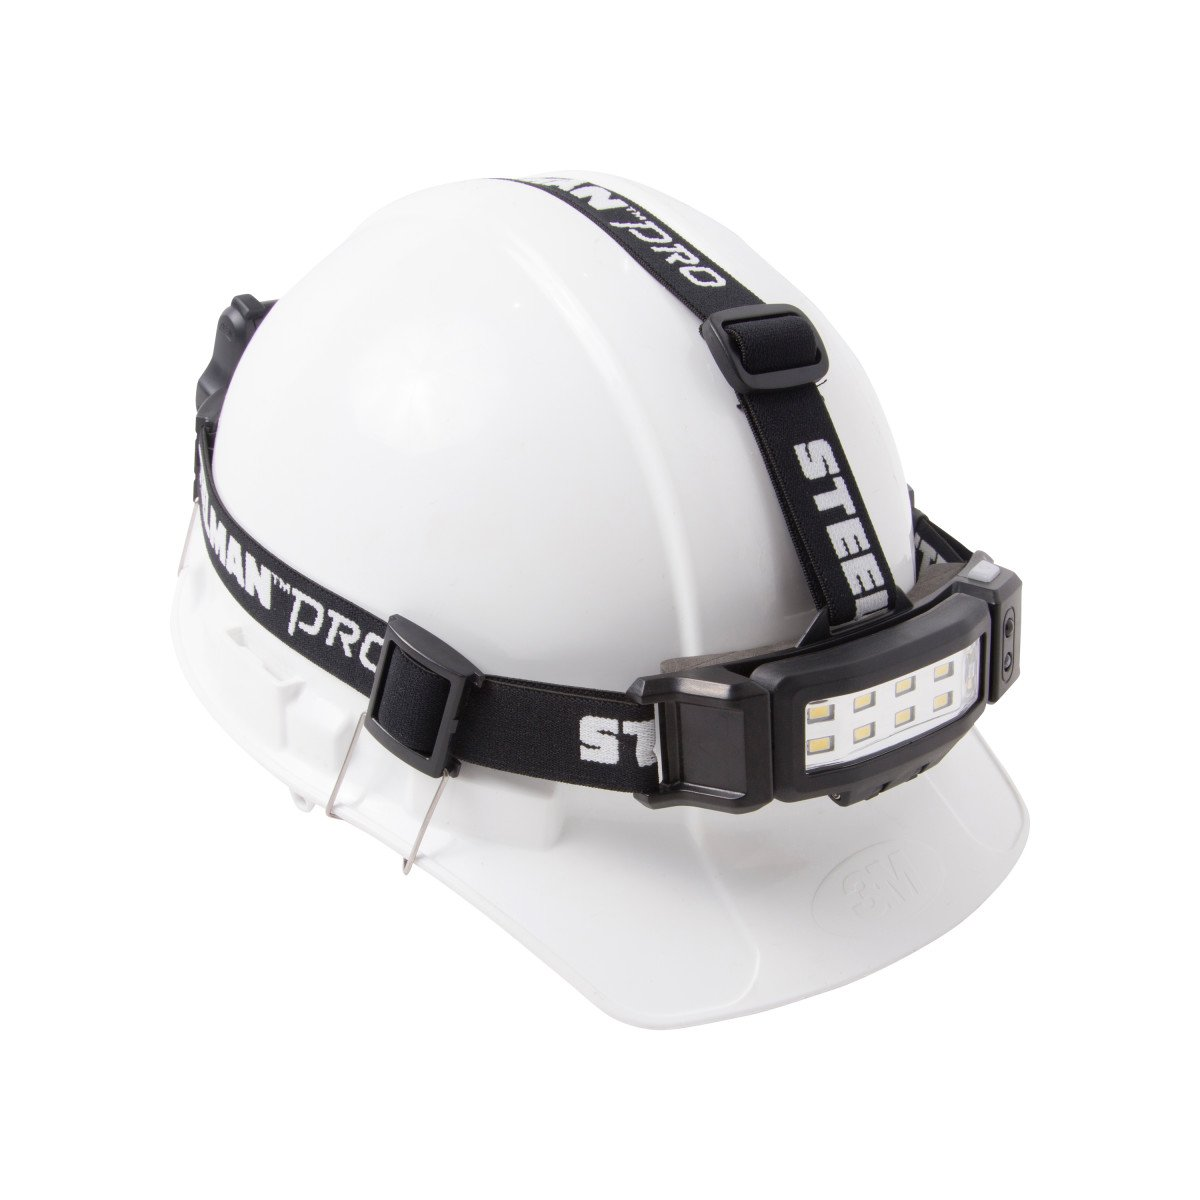 STEELMAN PRO 79052 Slim Profile LED Headlamp with Rear Flasher and 3 AA Batteries by Steelman Pro (Image #2)